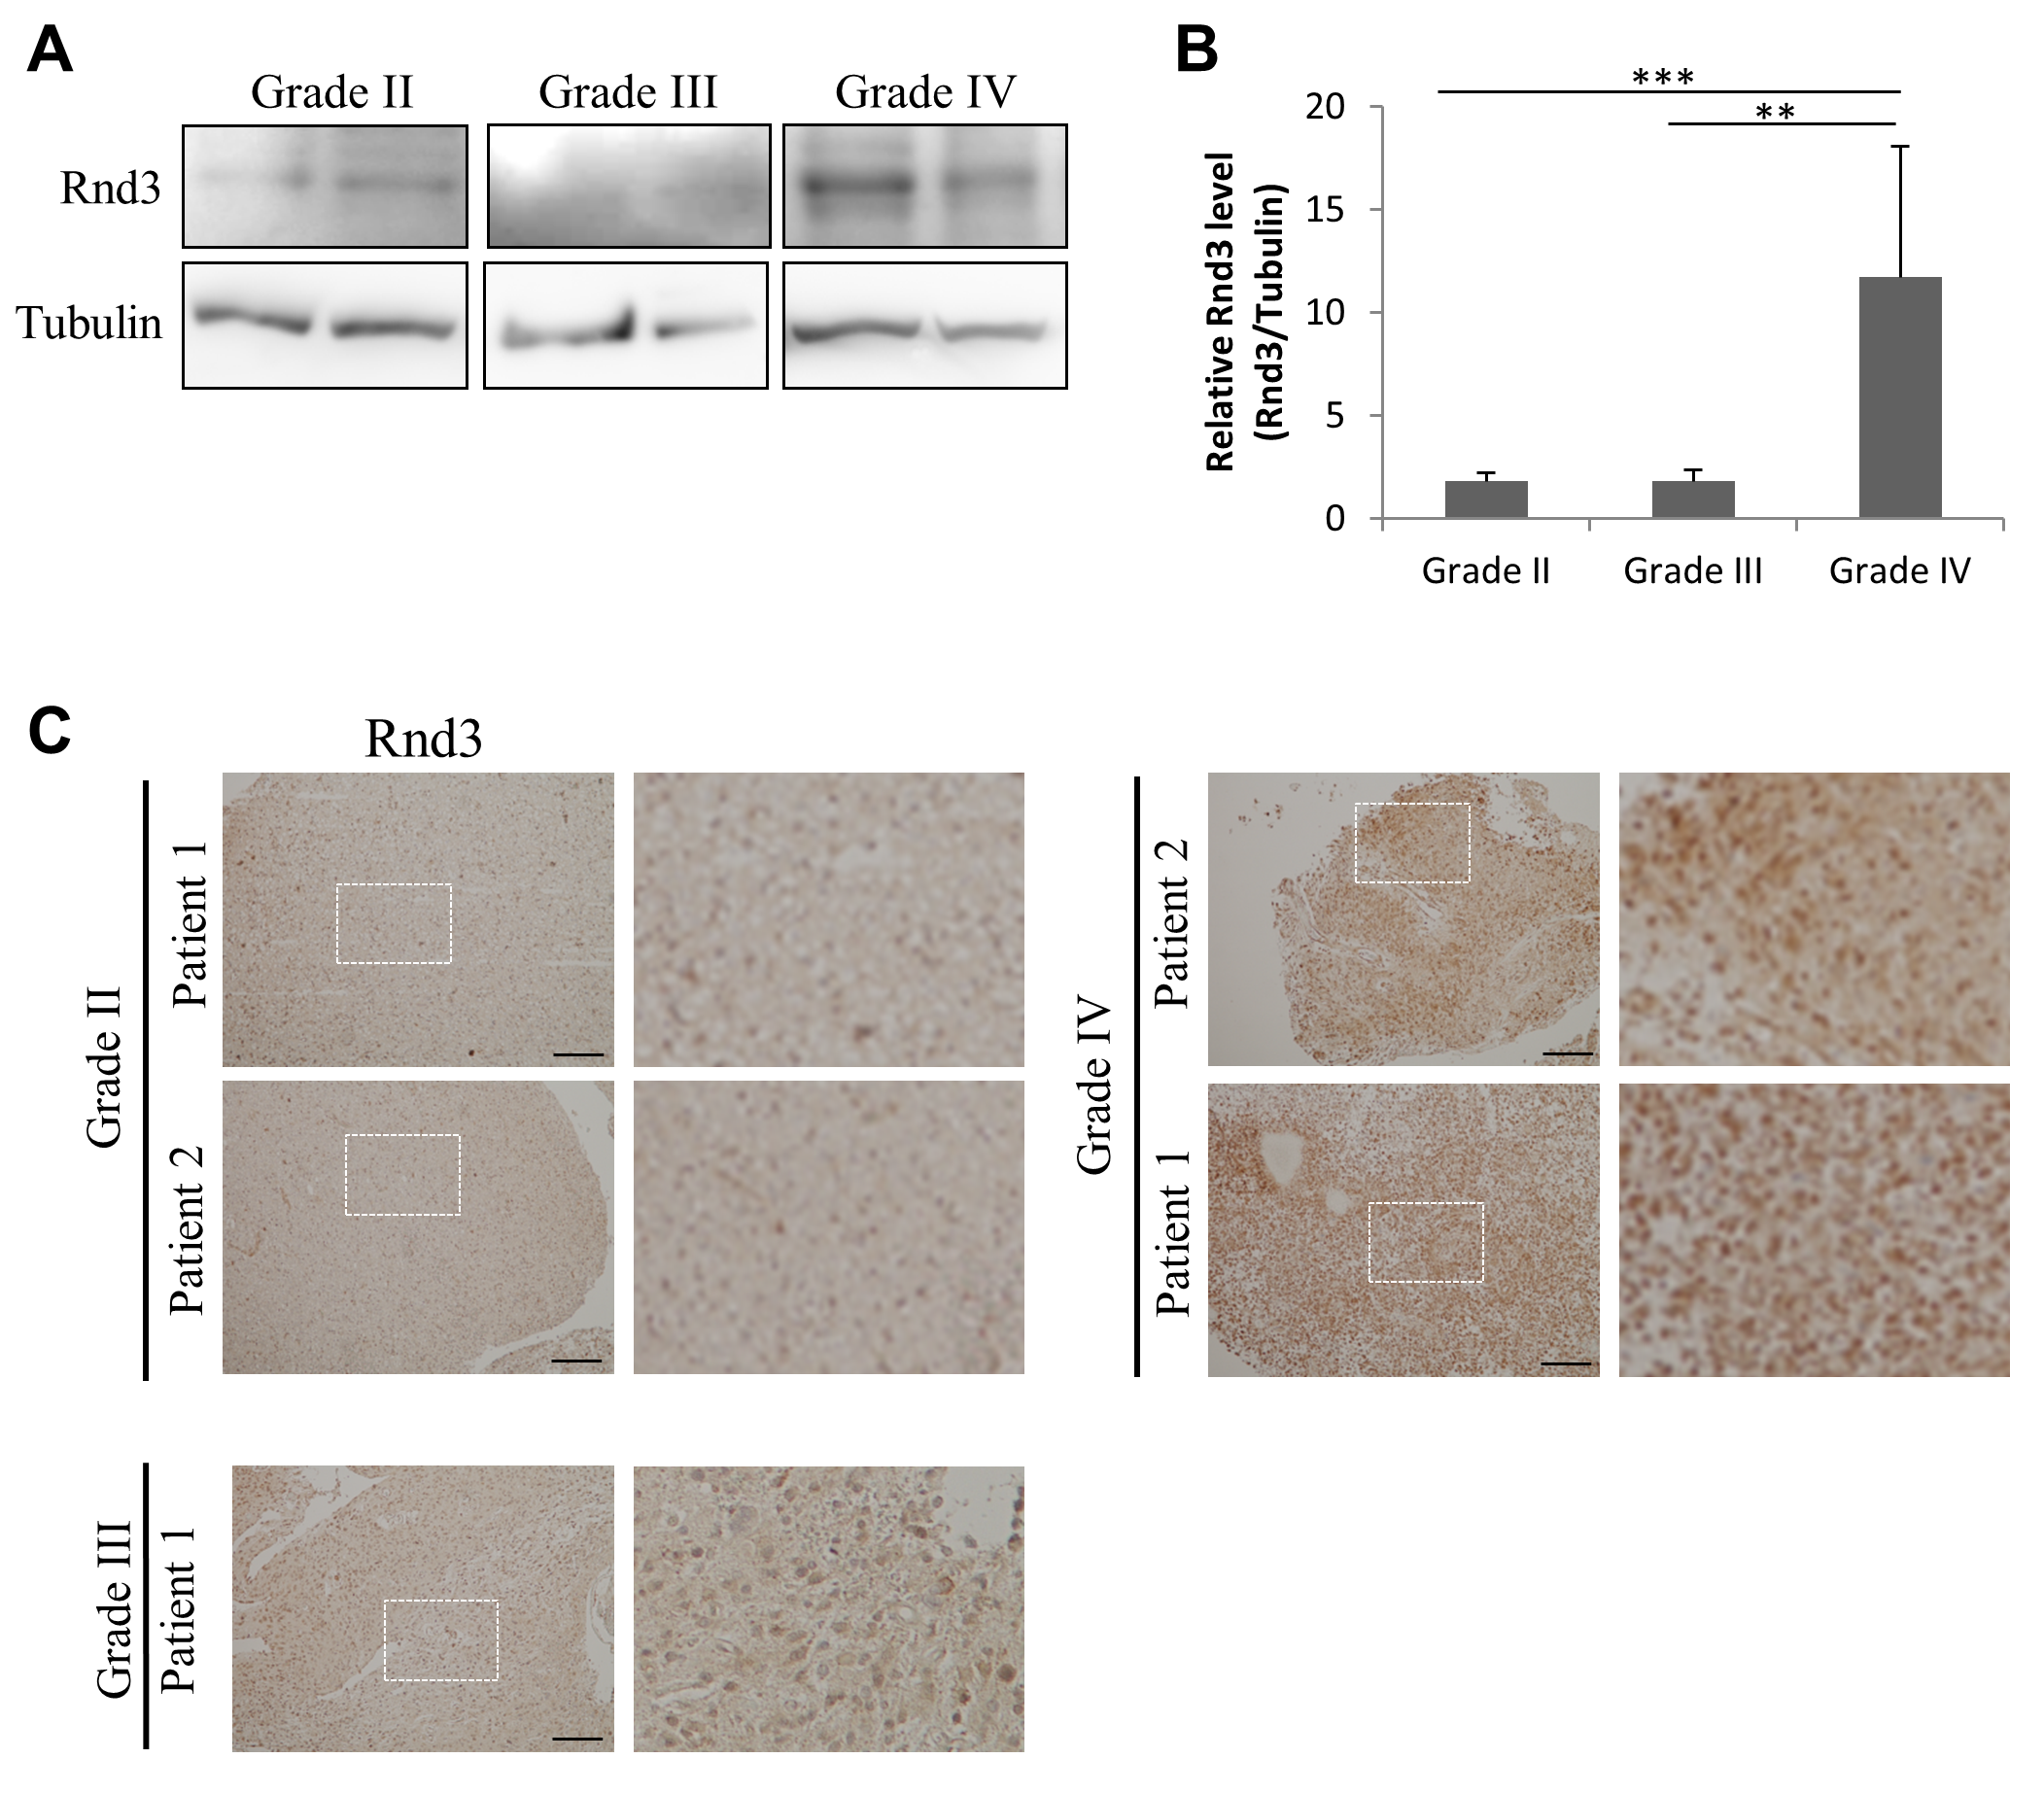 RND3 is up-regulated in grade IV glioma.